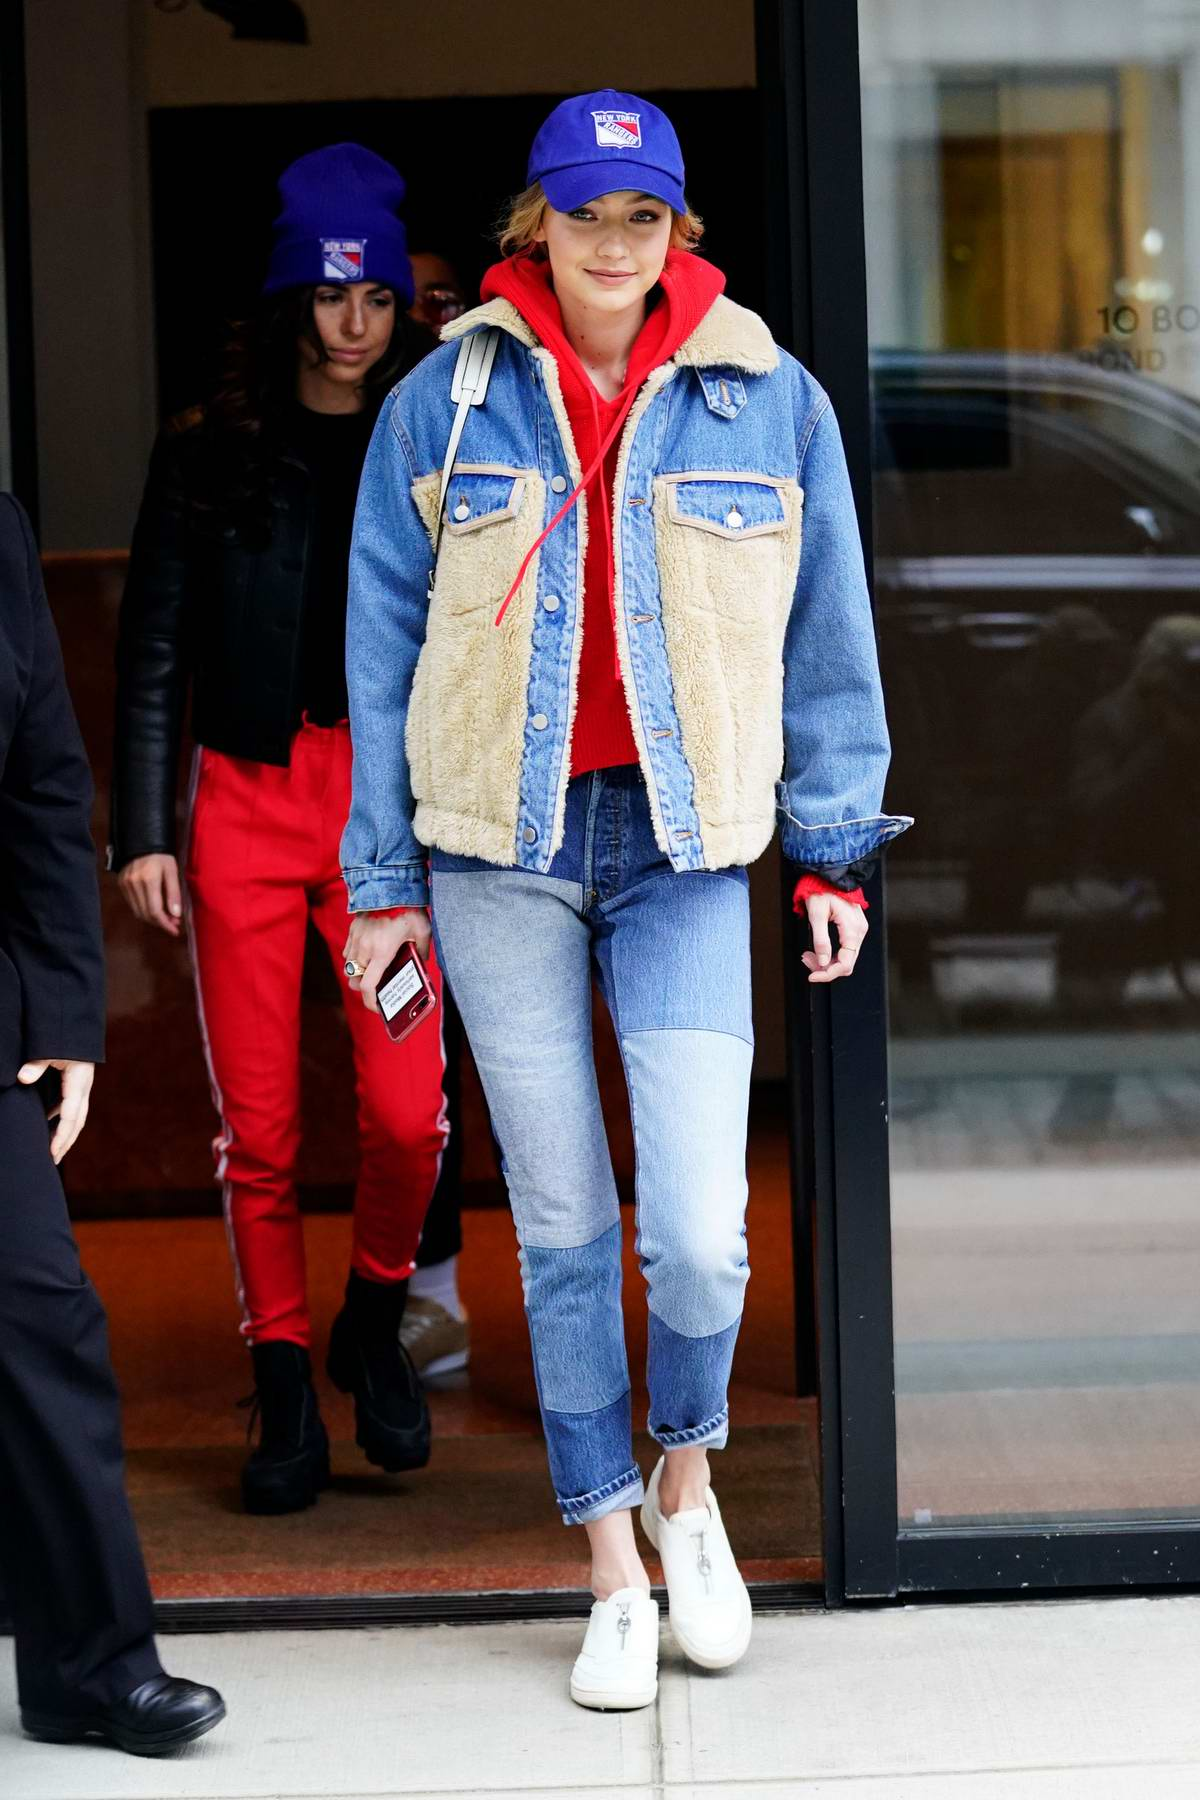 Gigi Hadid steps out in double denim with a New York Rangers hat as she heads out to the Rangers game in New York City